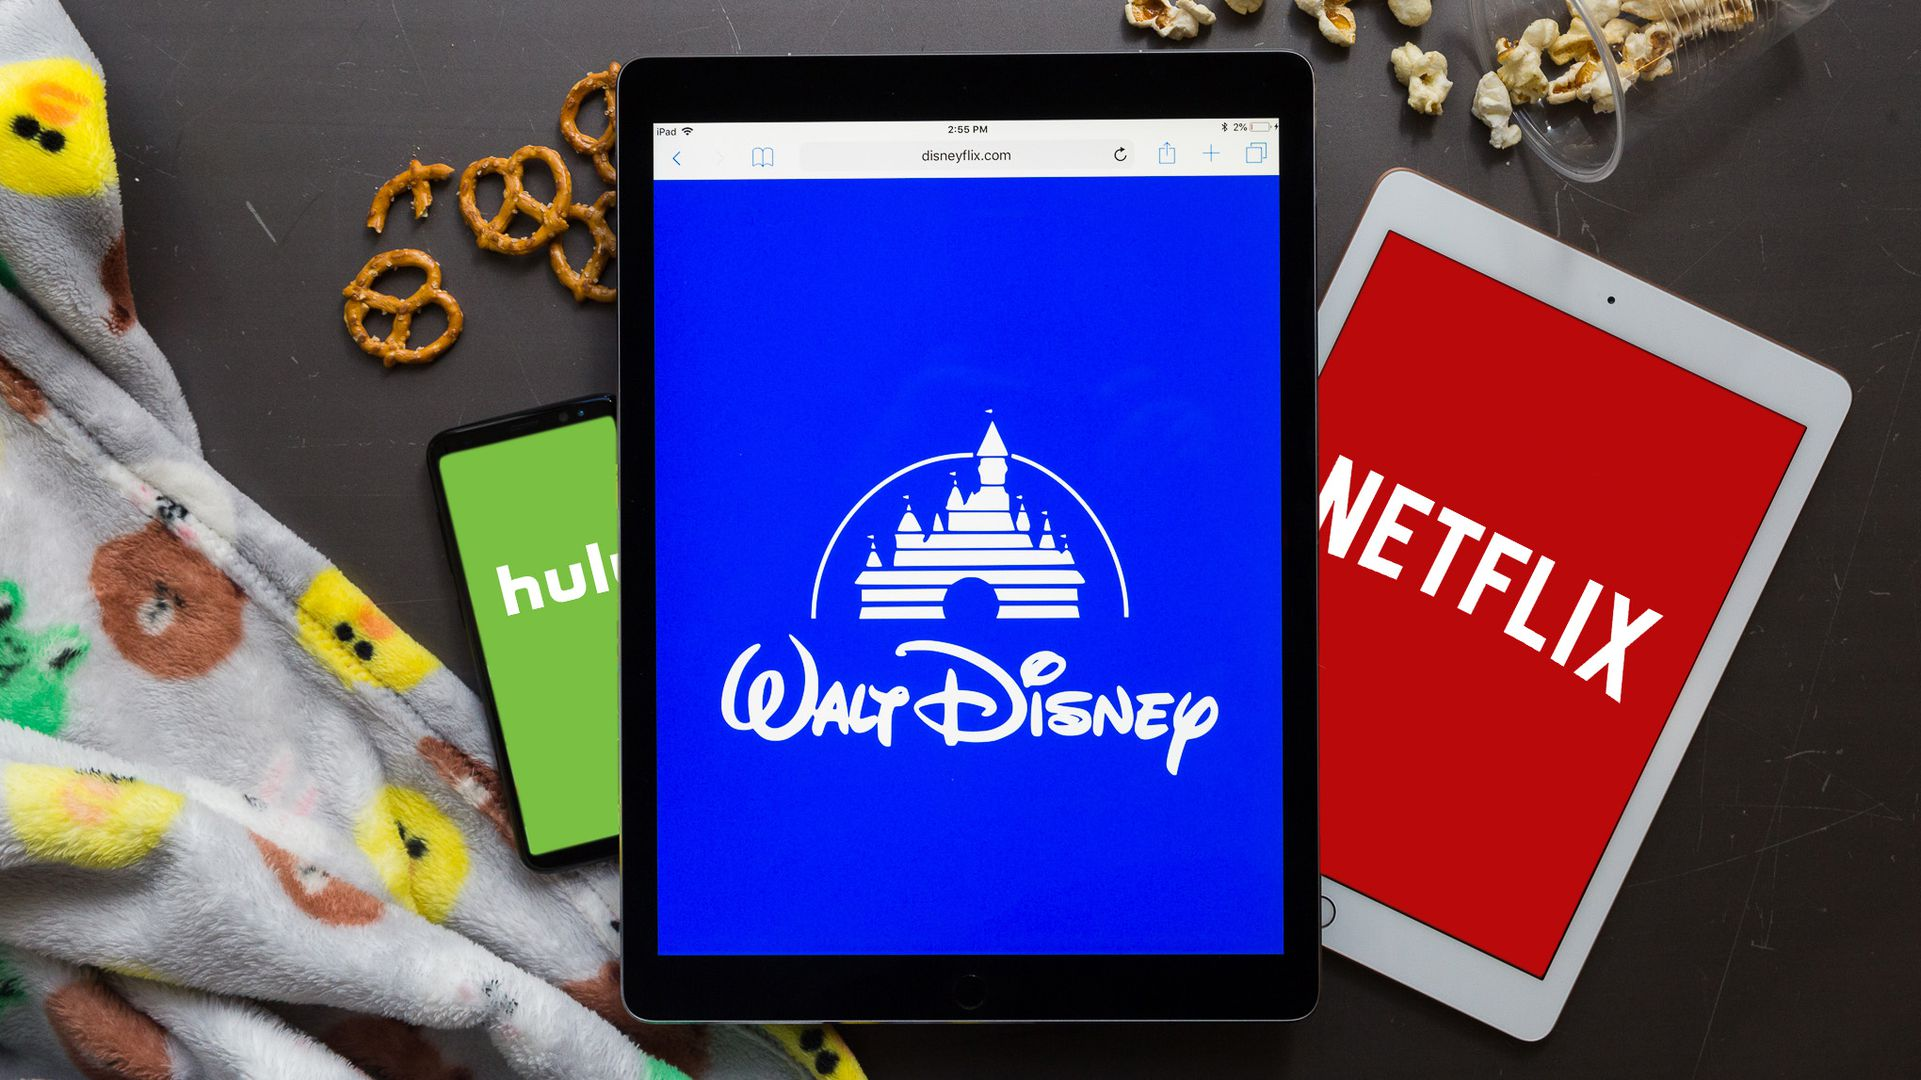 Disney Plus on Ipad Tablet Streaming Service Comparison Netflix Photo